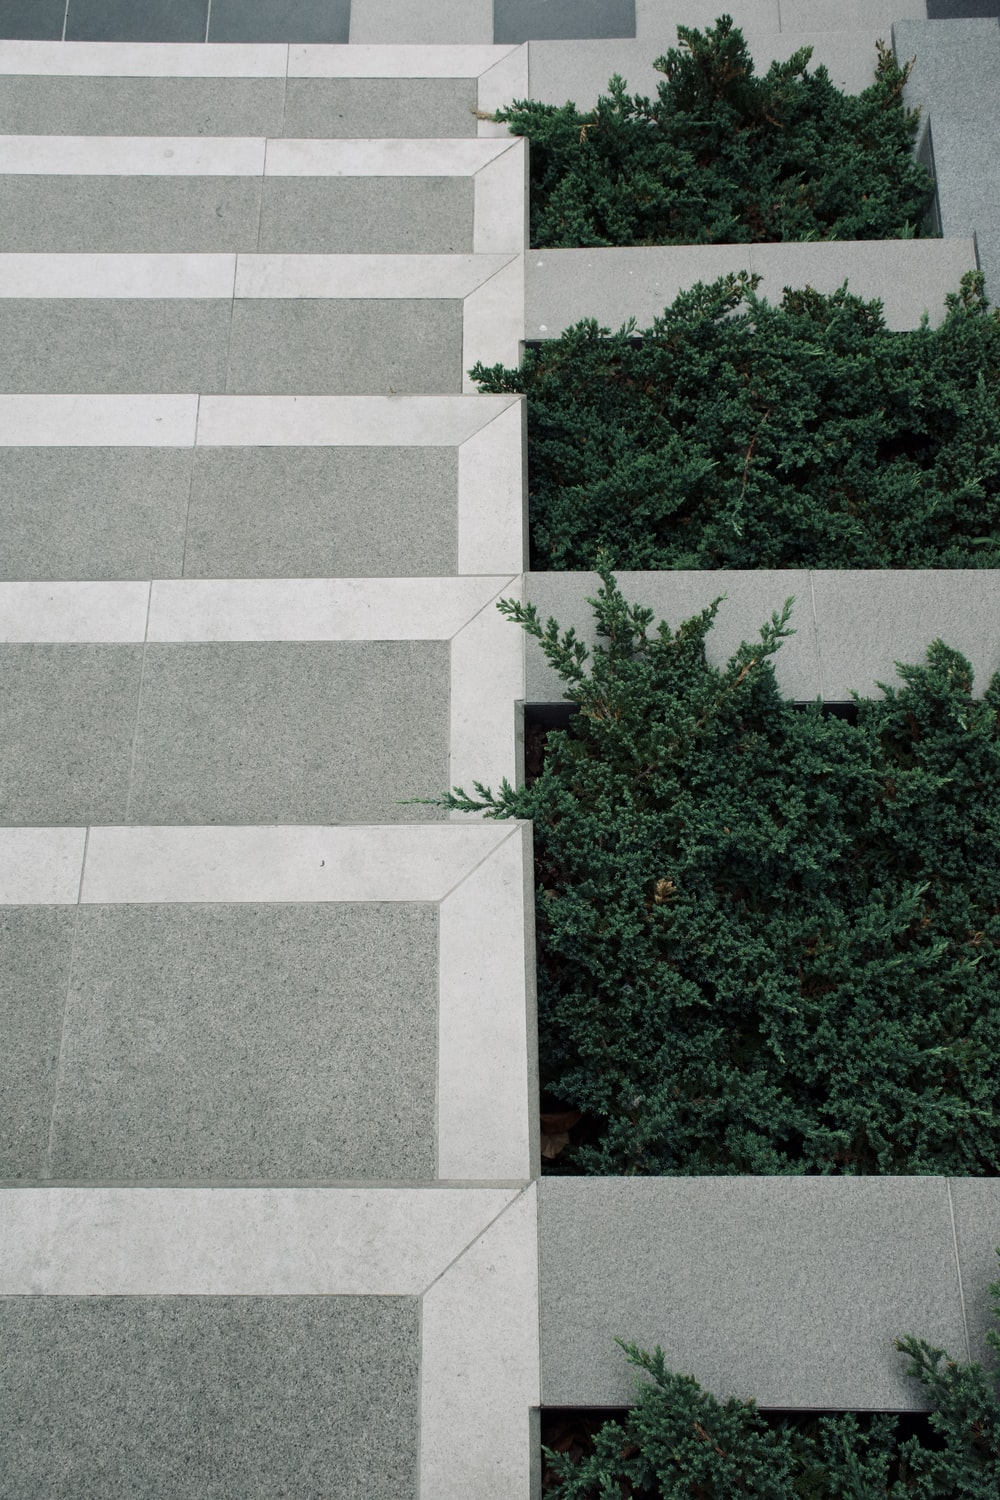 green-leafed plants on gray building